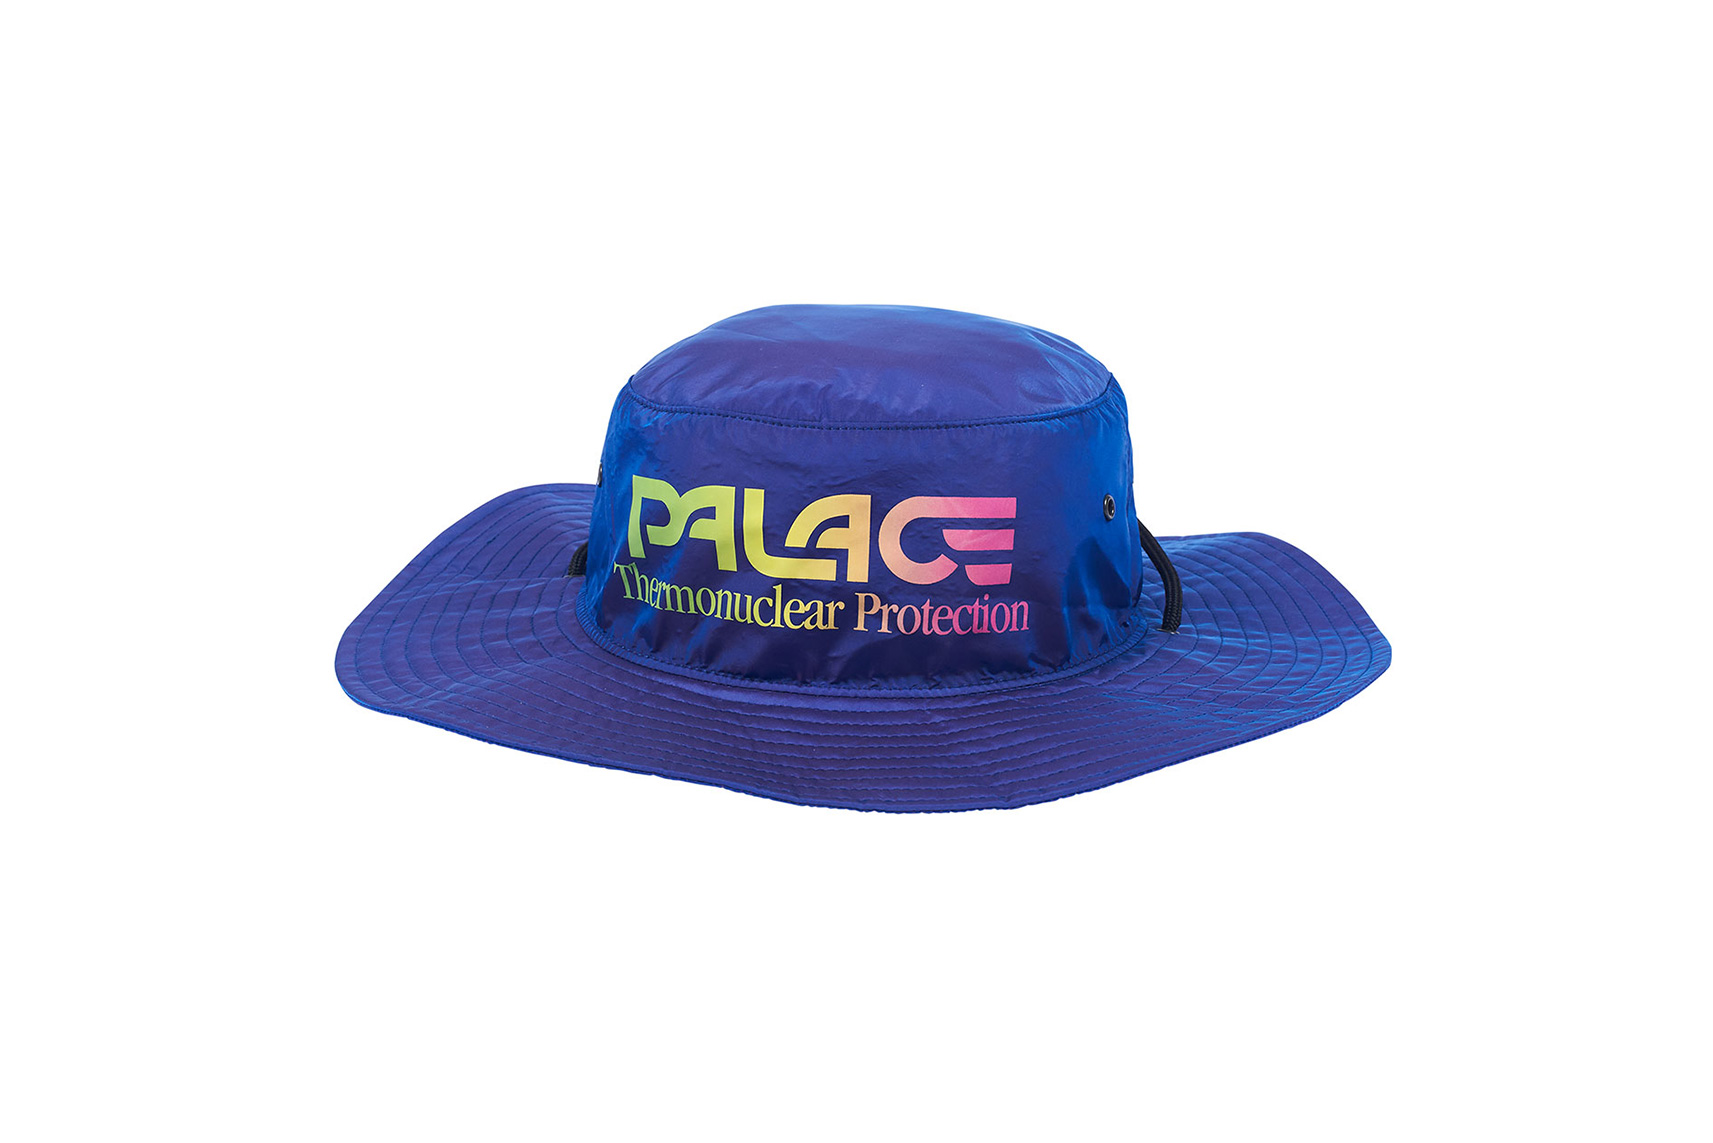 Palace Summer 2018 Collection Drop 3   Oakley Collaboration 0425502d5d11